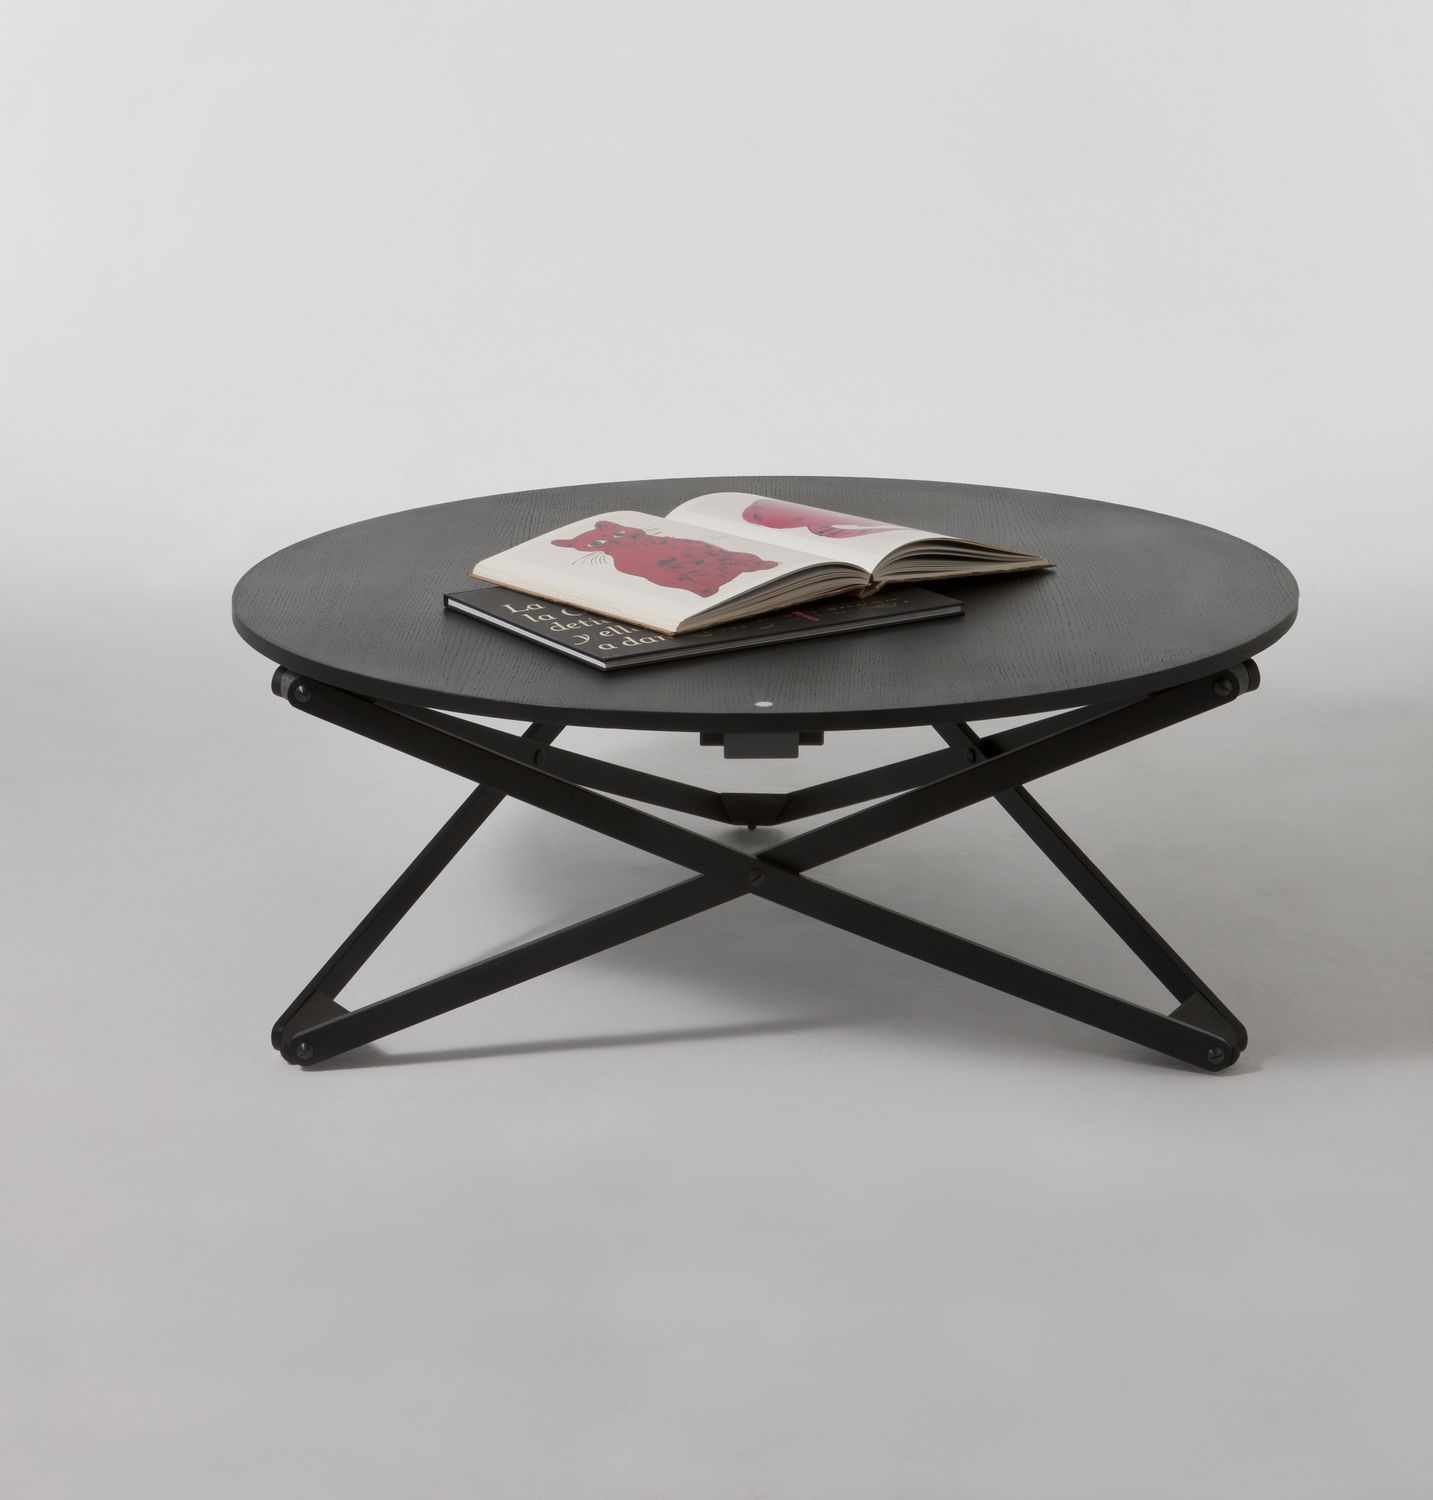 Fantastic Design Of The Rounded Table Of The Coffe Ideas With Black Wooden Legs Ideas On The White Floor Ideas